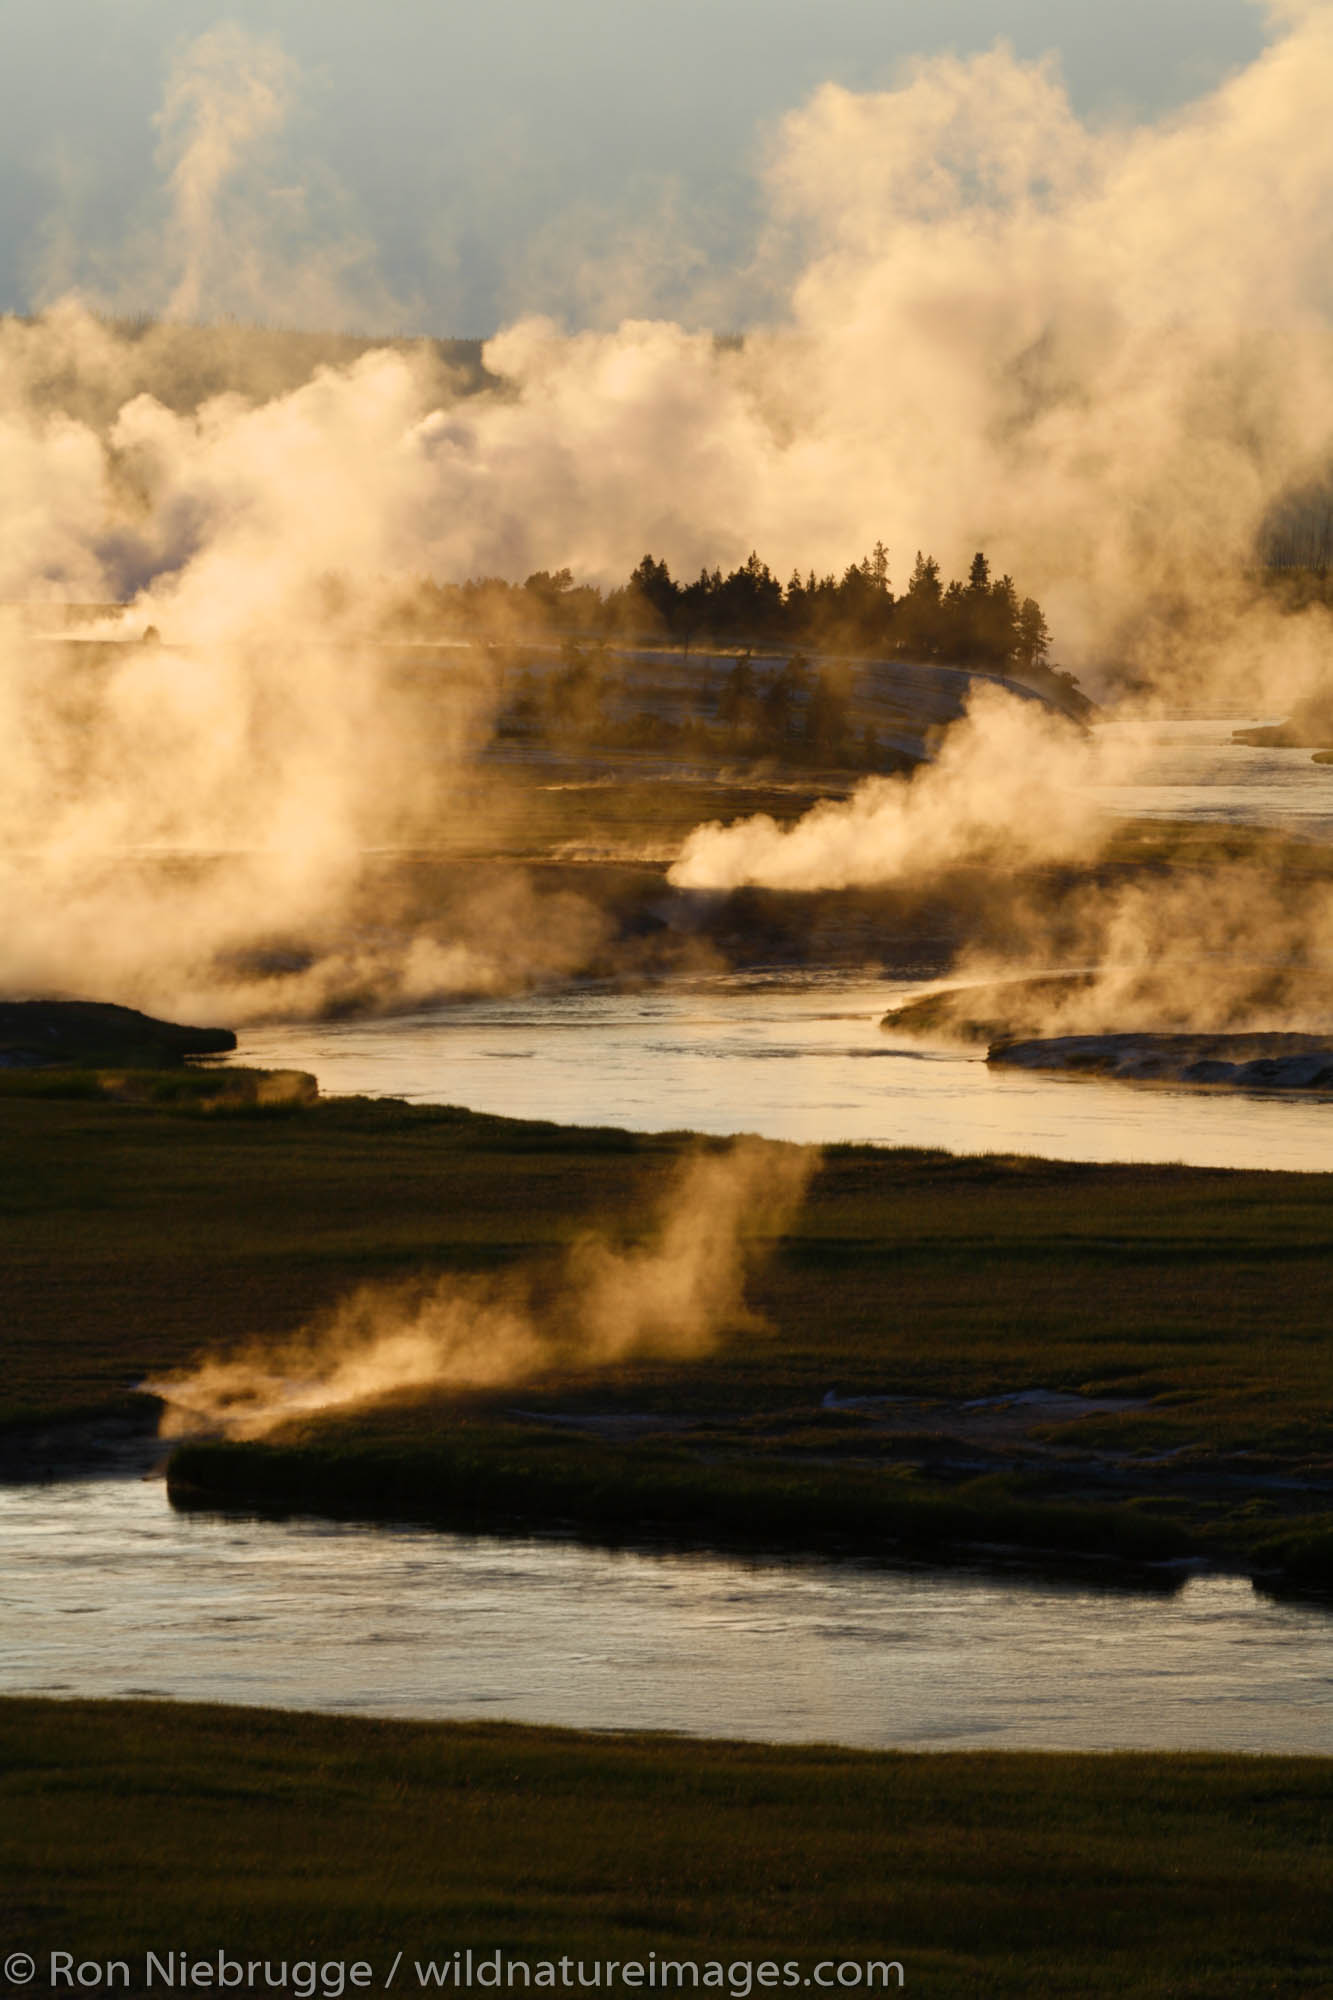 Fishermen in the Firehole River, Midway Geyser Basin, Yellowstone National Park, Wyoming.